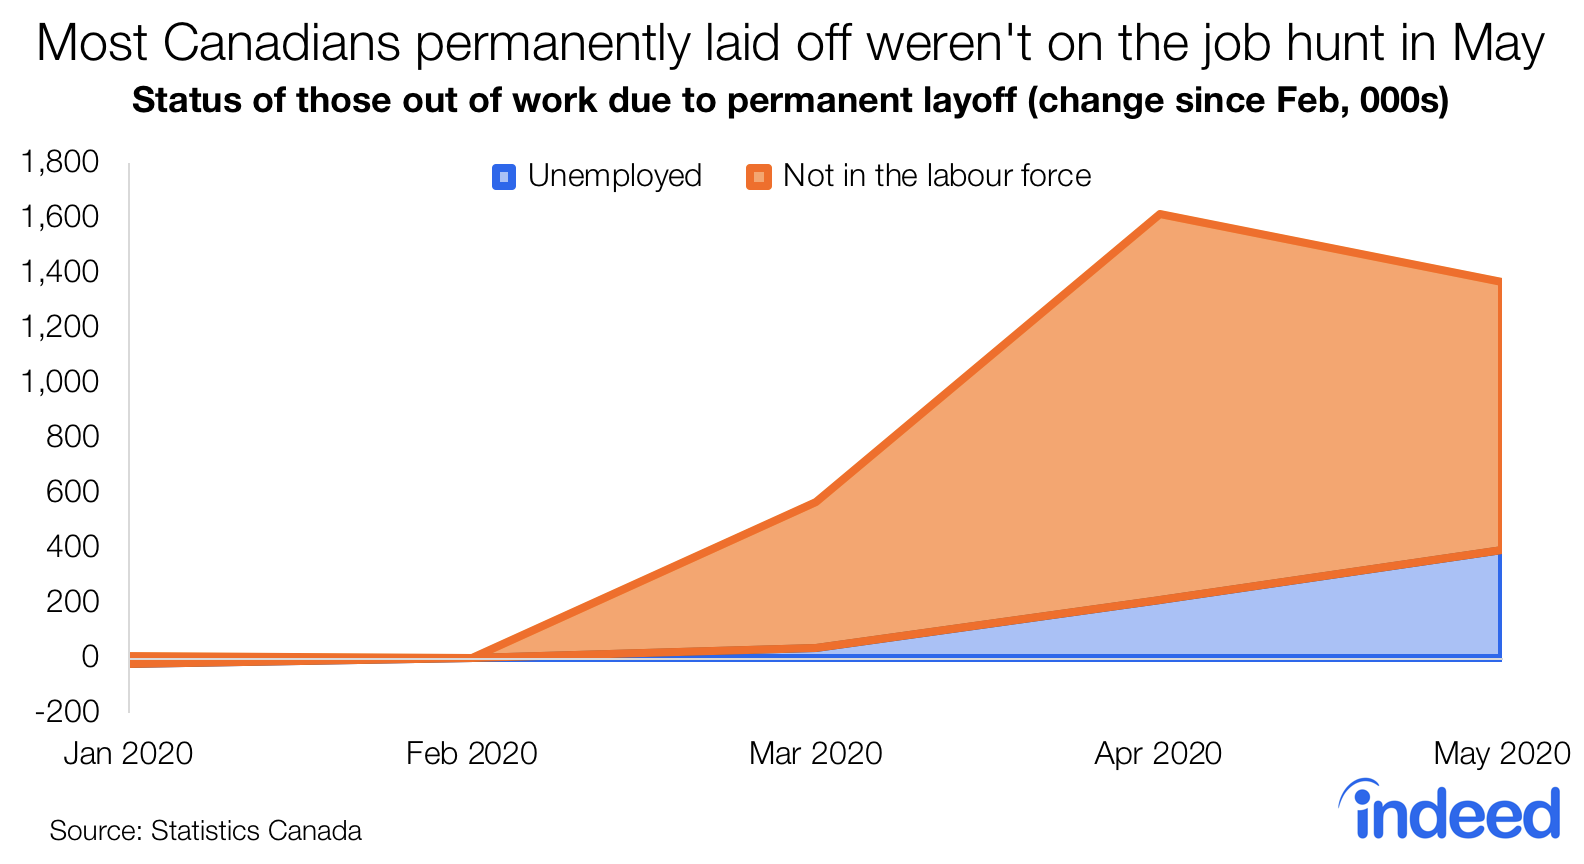 Most Canadians permanently laid off weren't on the job hunt in May